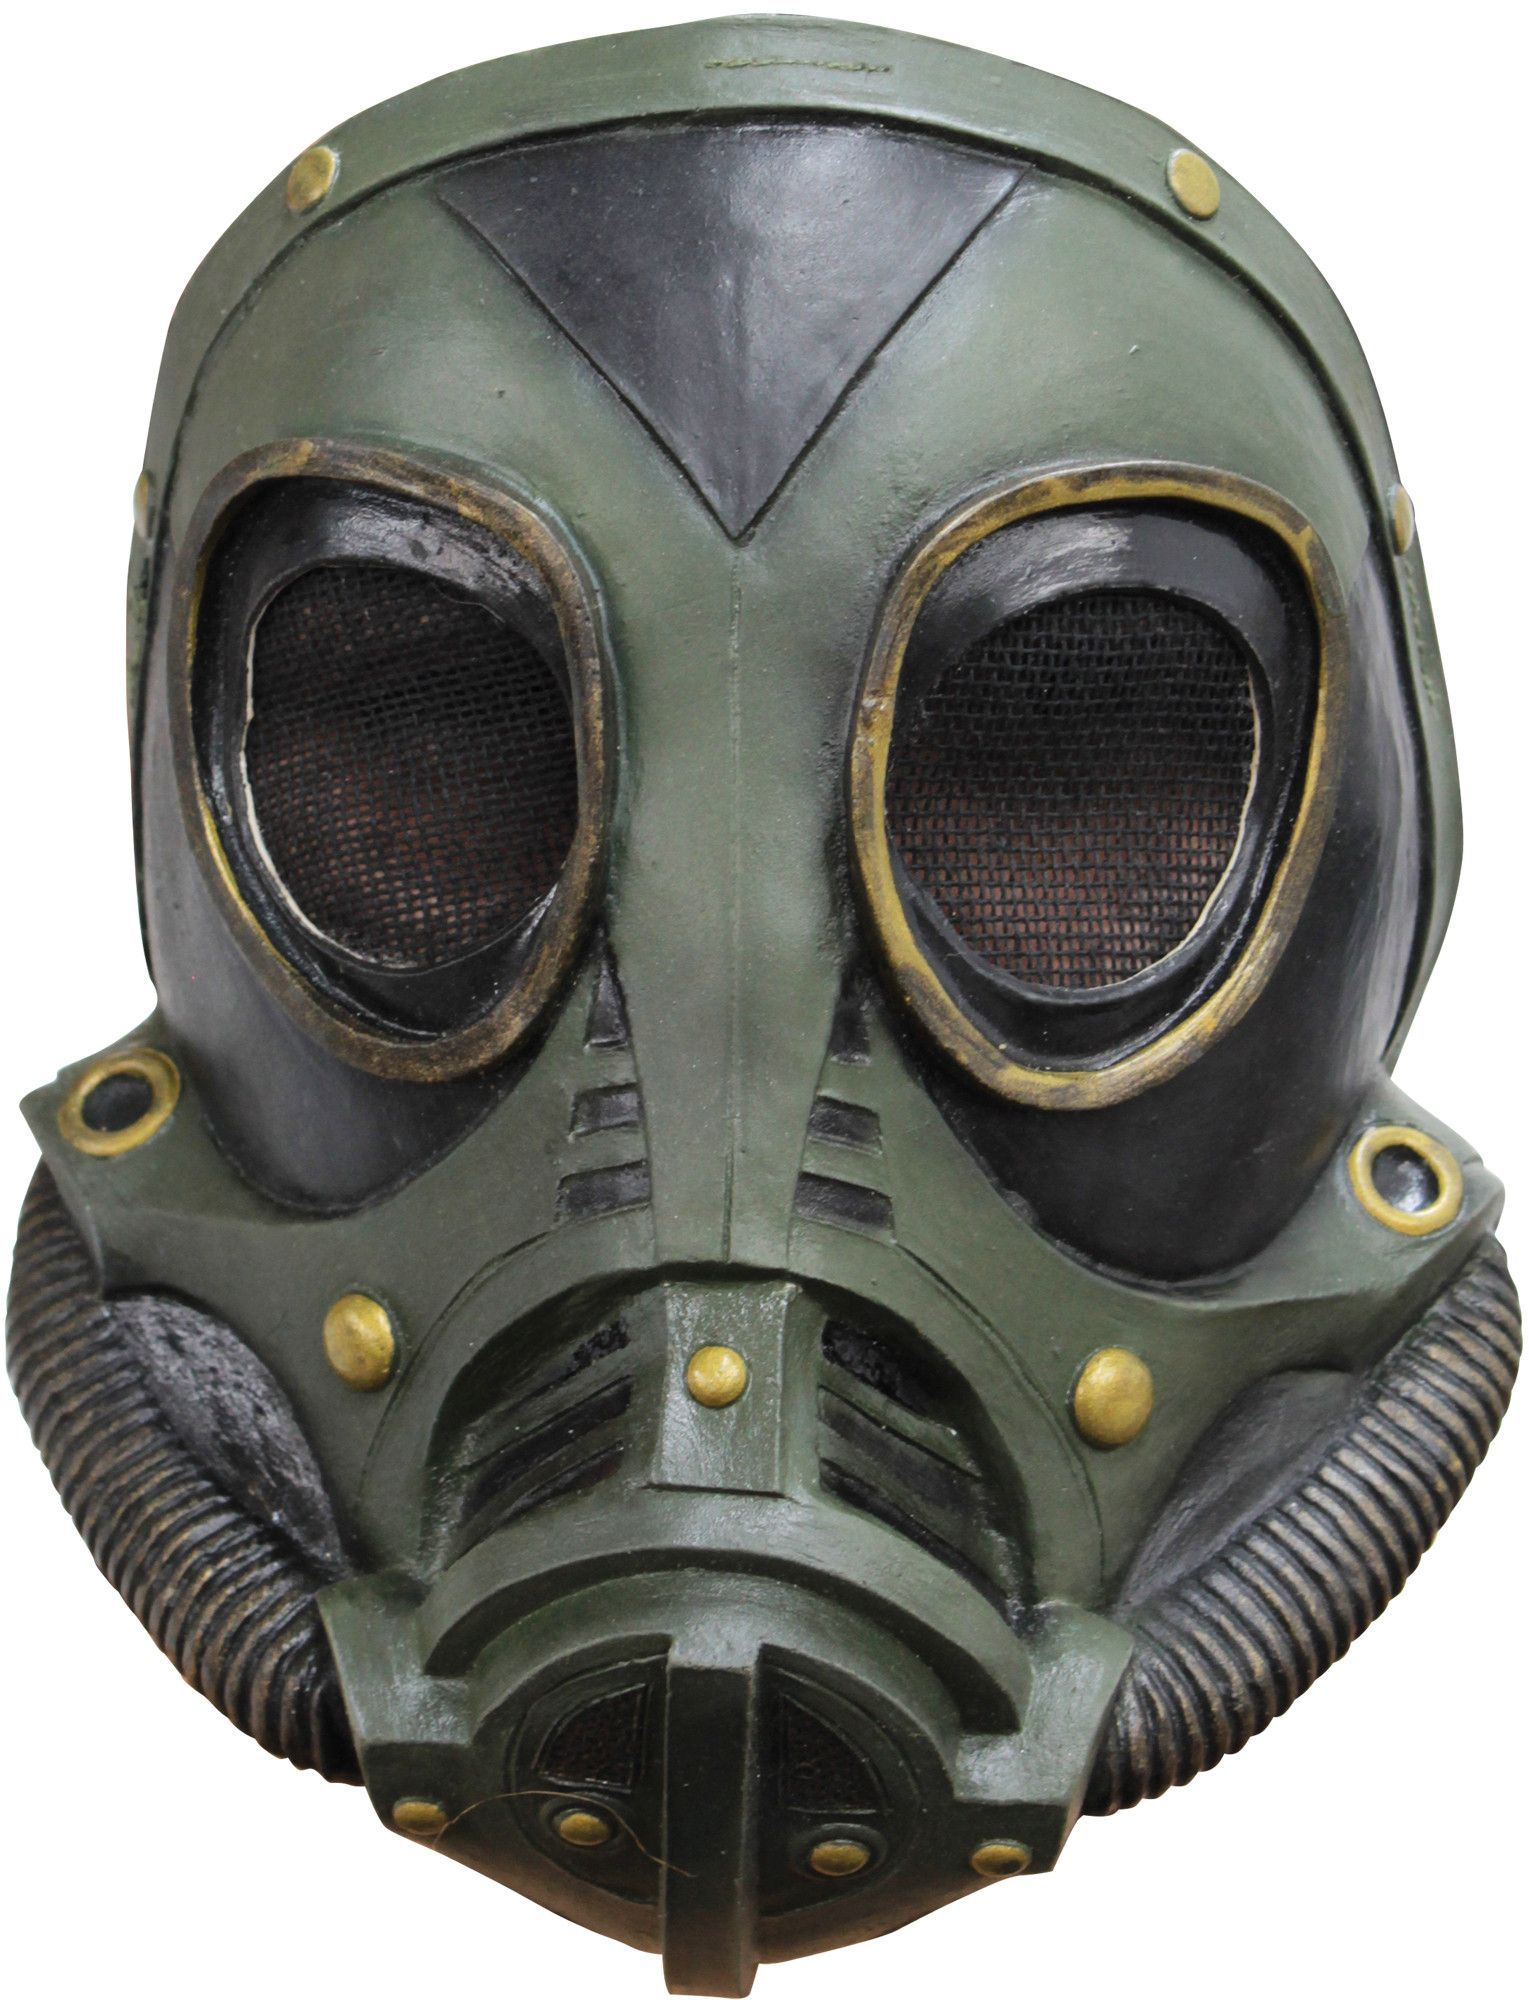 Medieval Gas Mask | 2.080 respirators, gas masks & steam punk ...